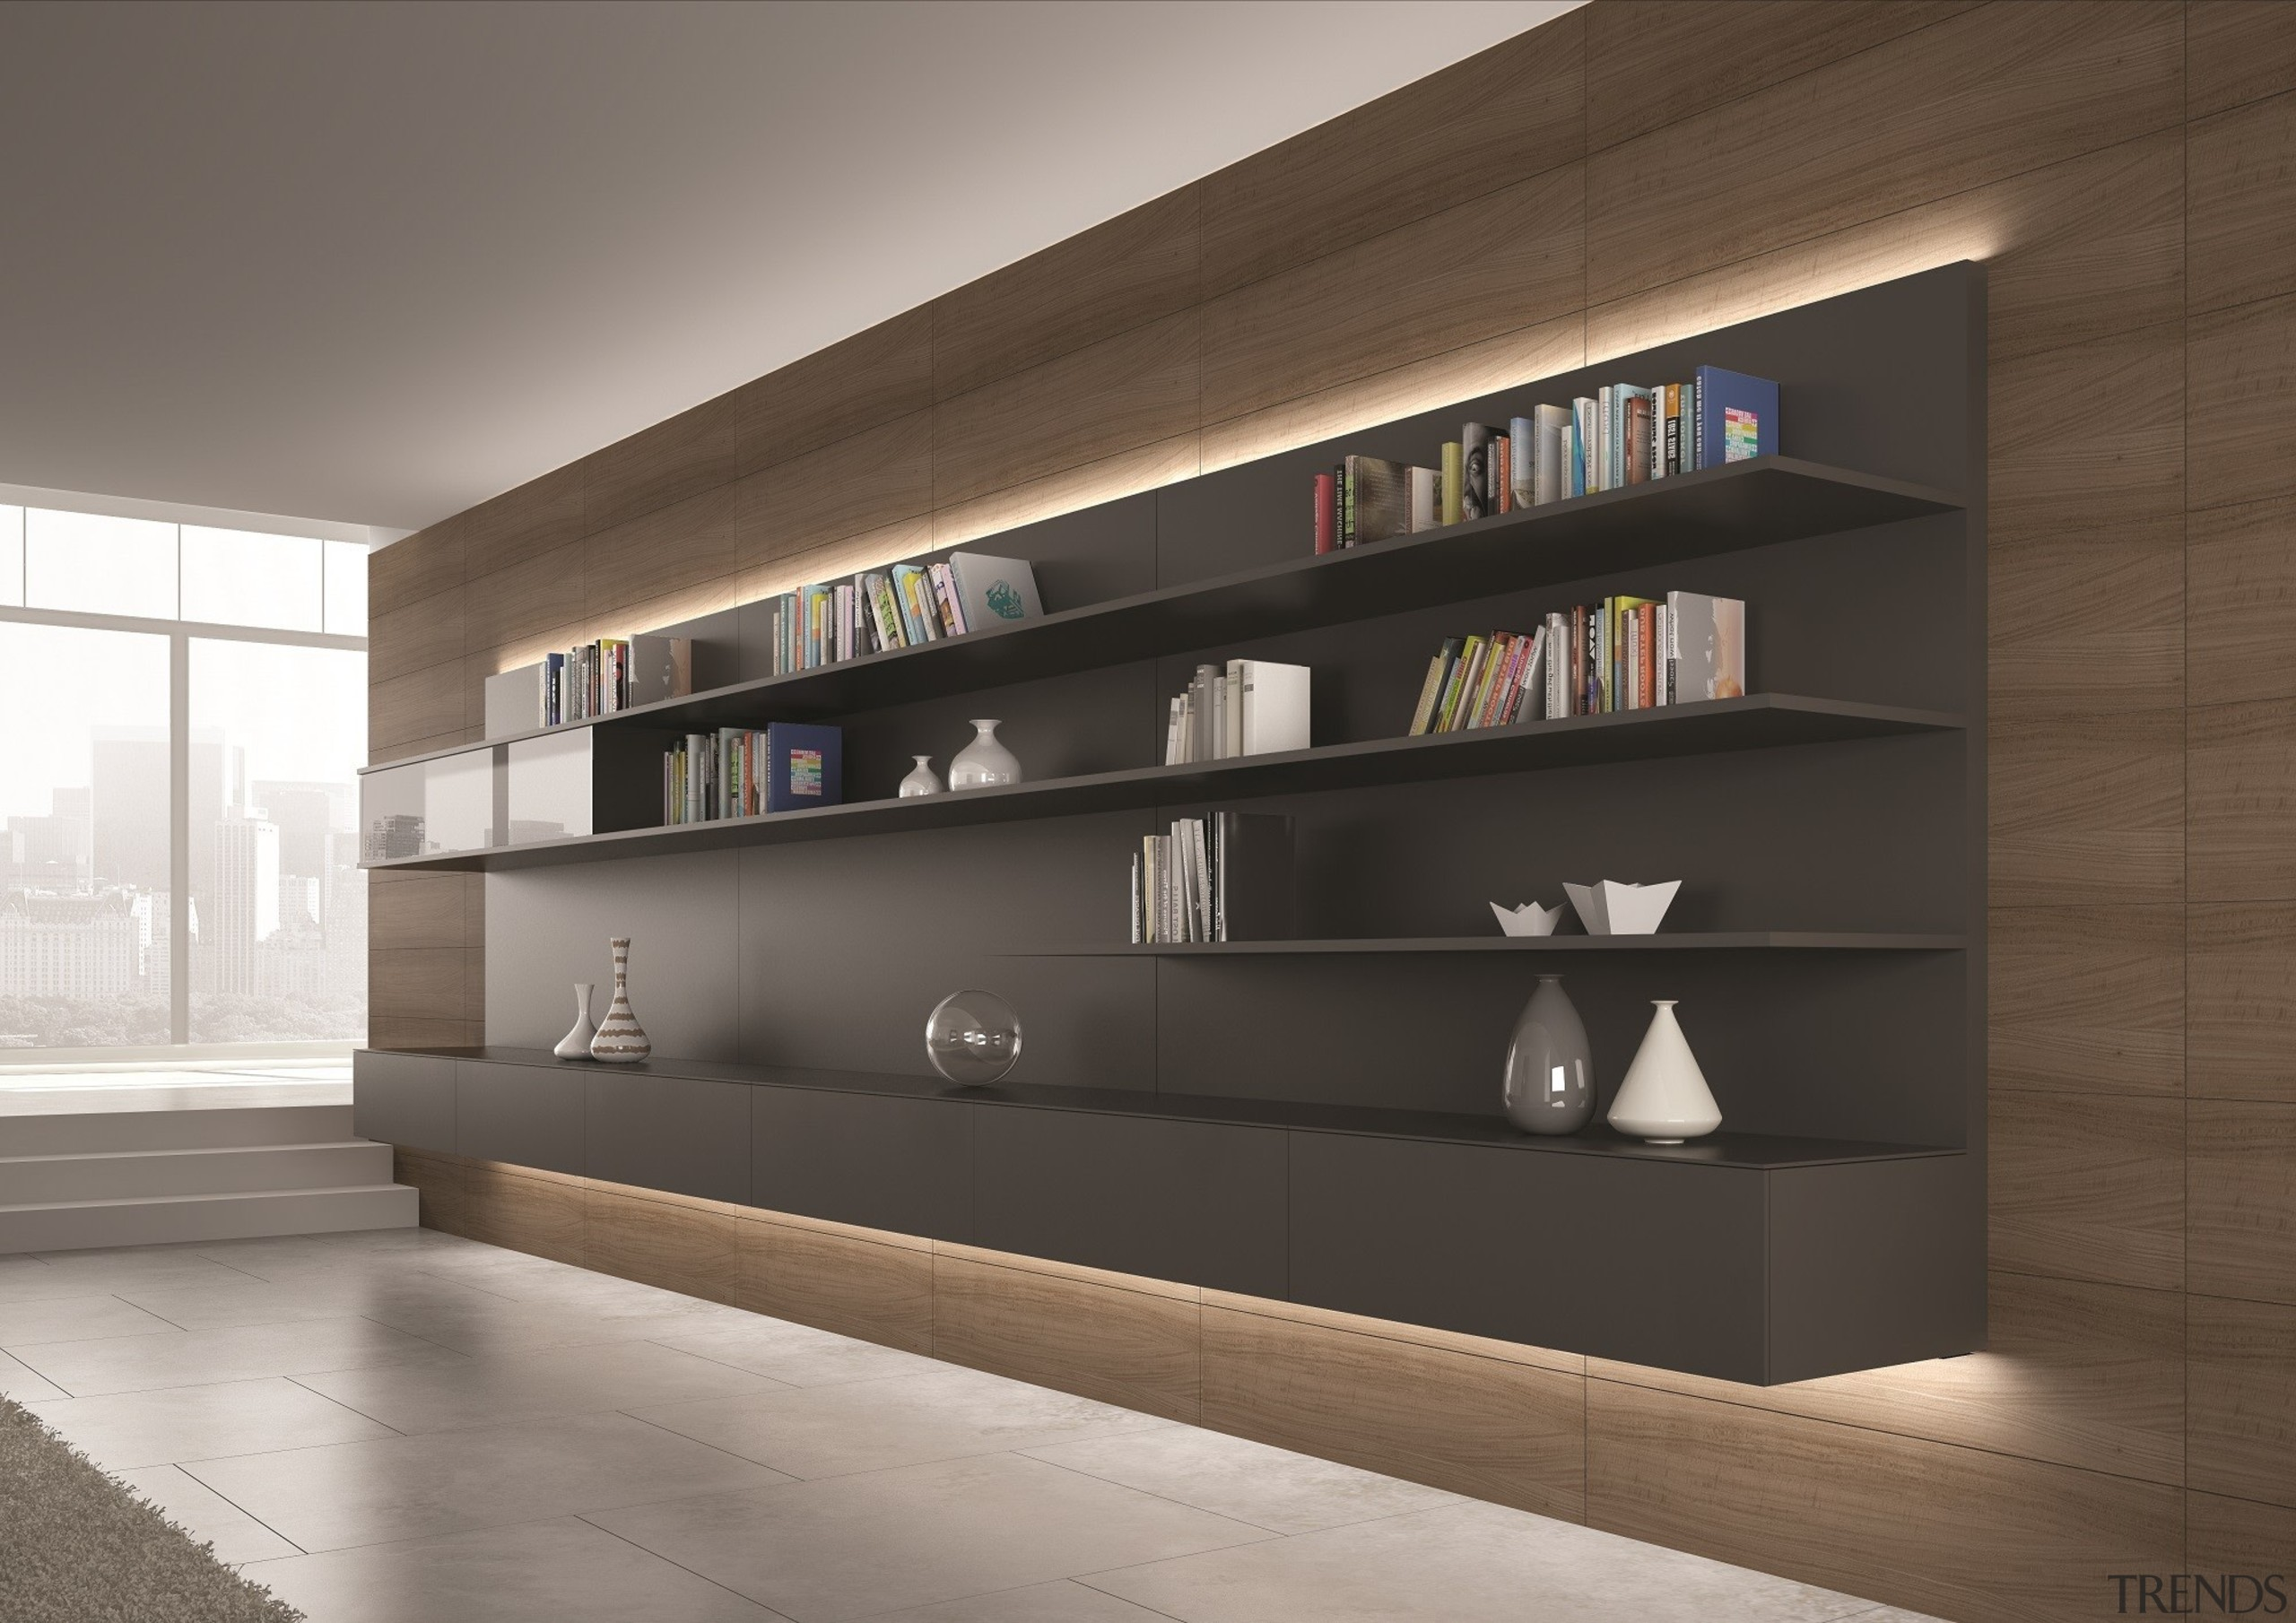 The connection system of this model ensures consistency architecture, bookcase, display case, furniture, interior design, lobby, shelf, shelving, gray, brown